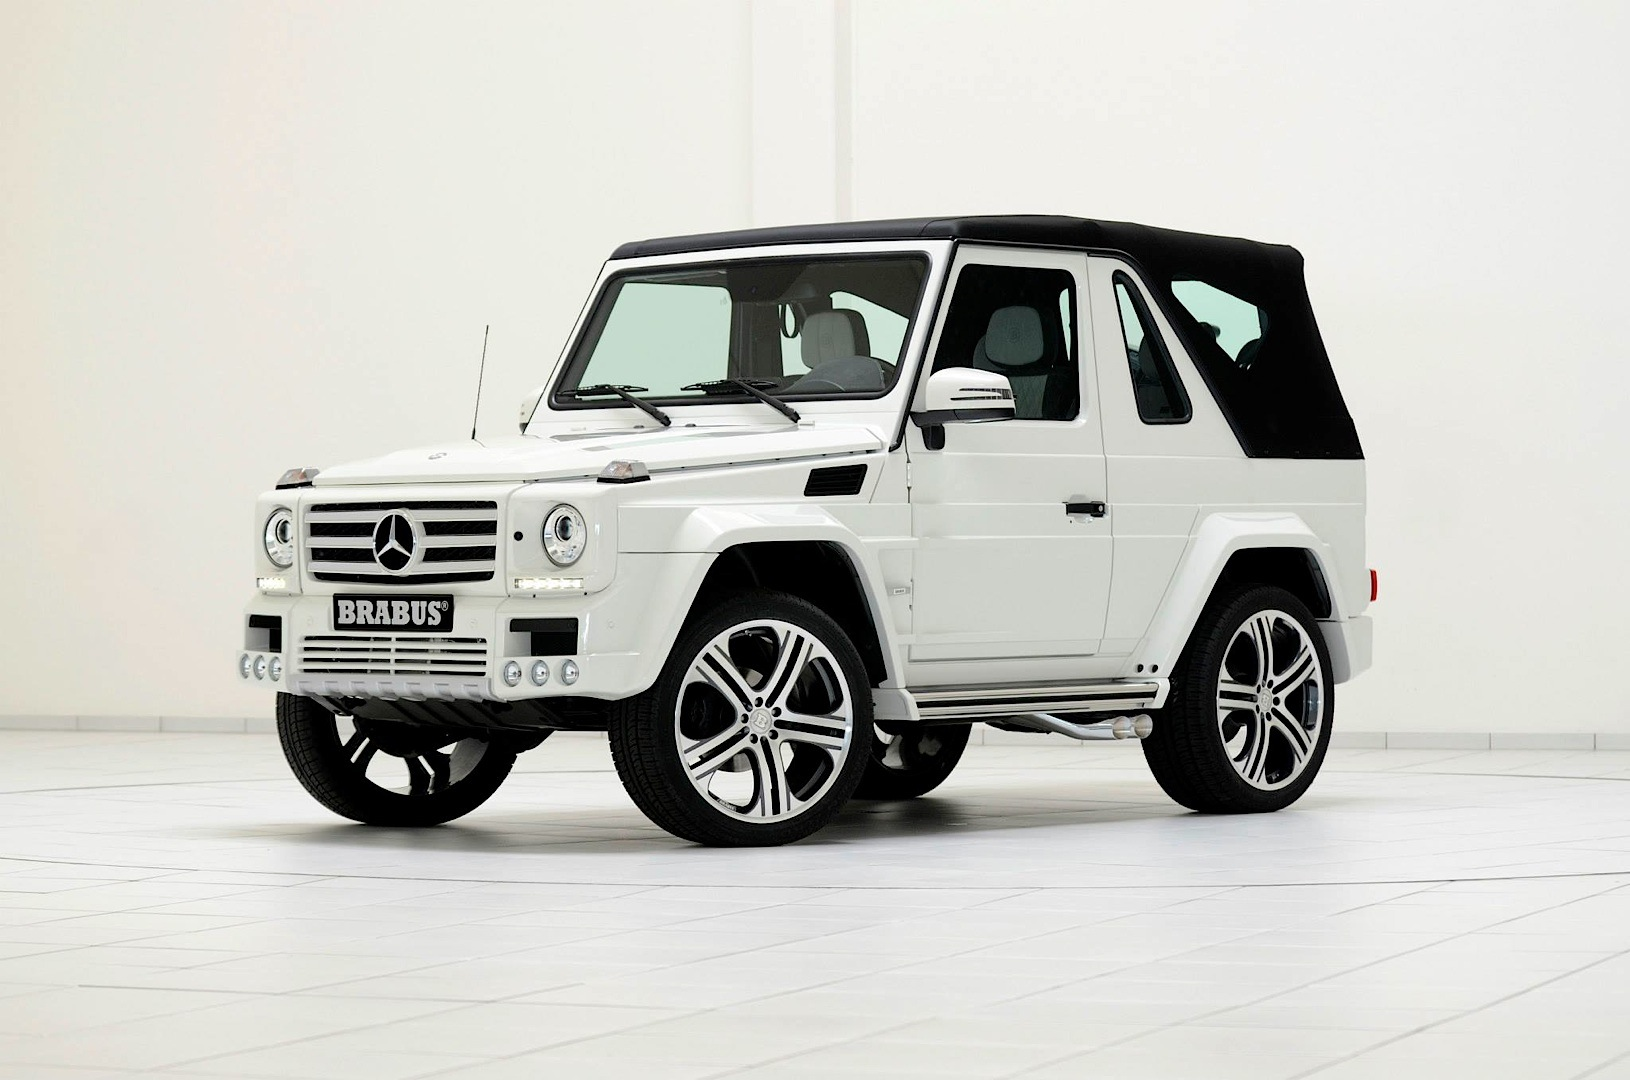 Brabus Widestar Package For G500 Cabrio With Unreal